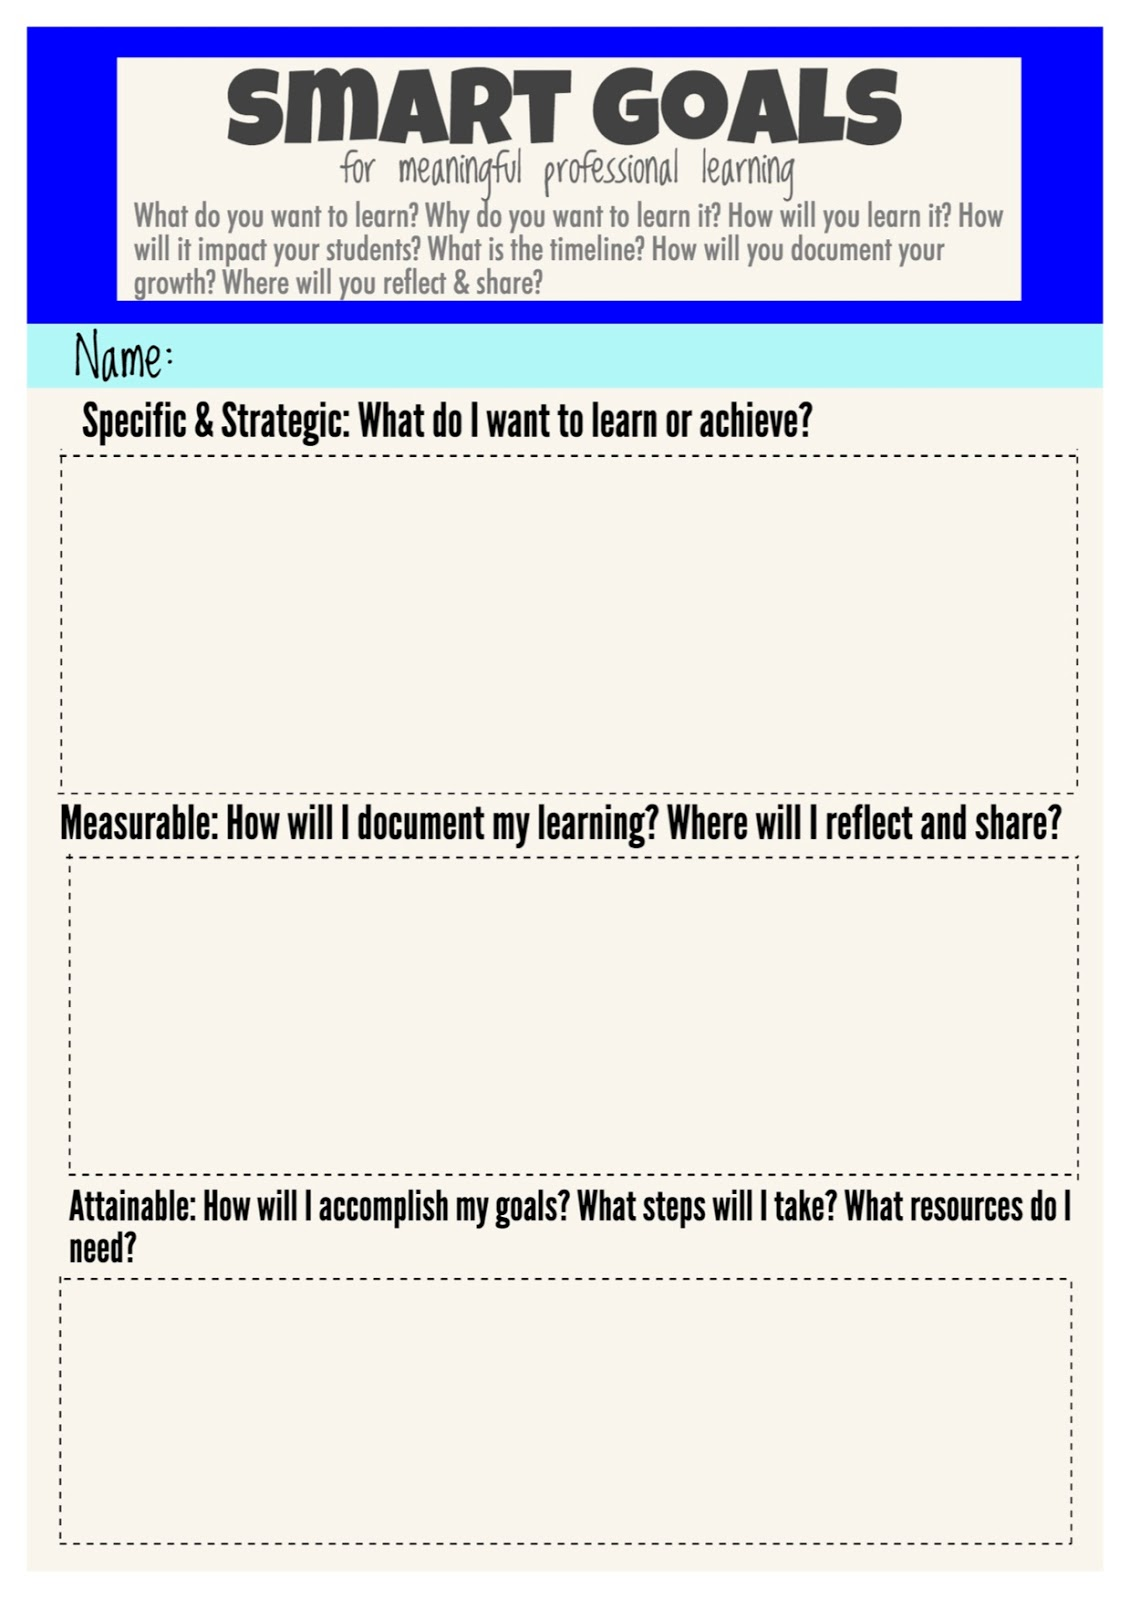 Edtech Workshop Structures To Support Professional Learning